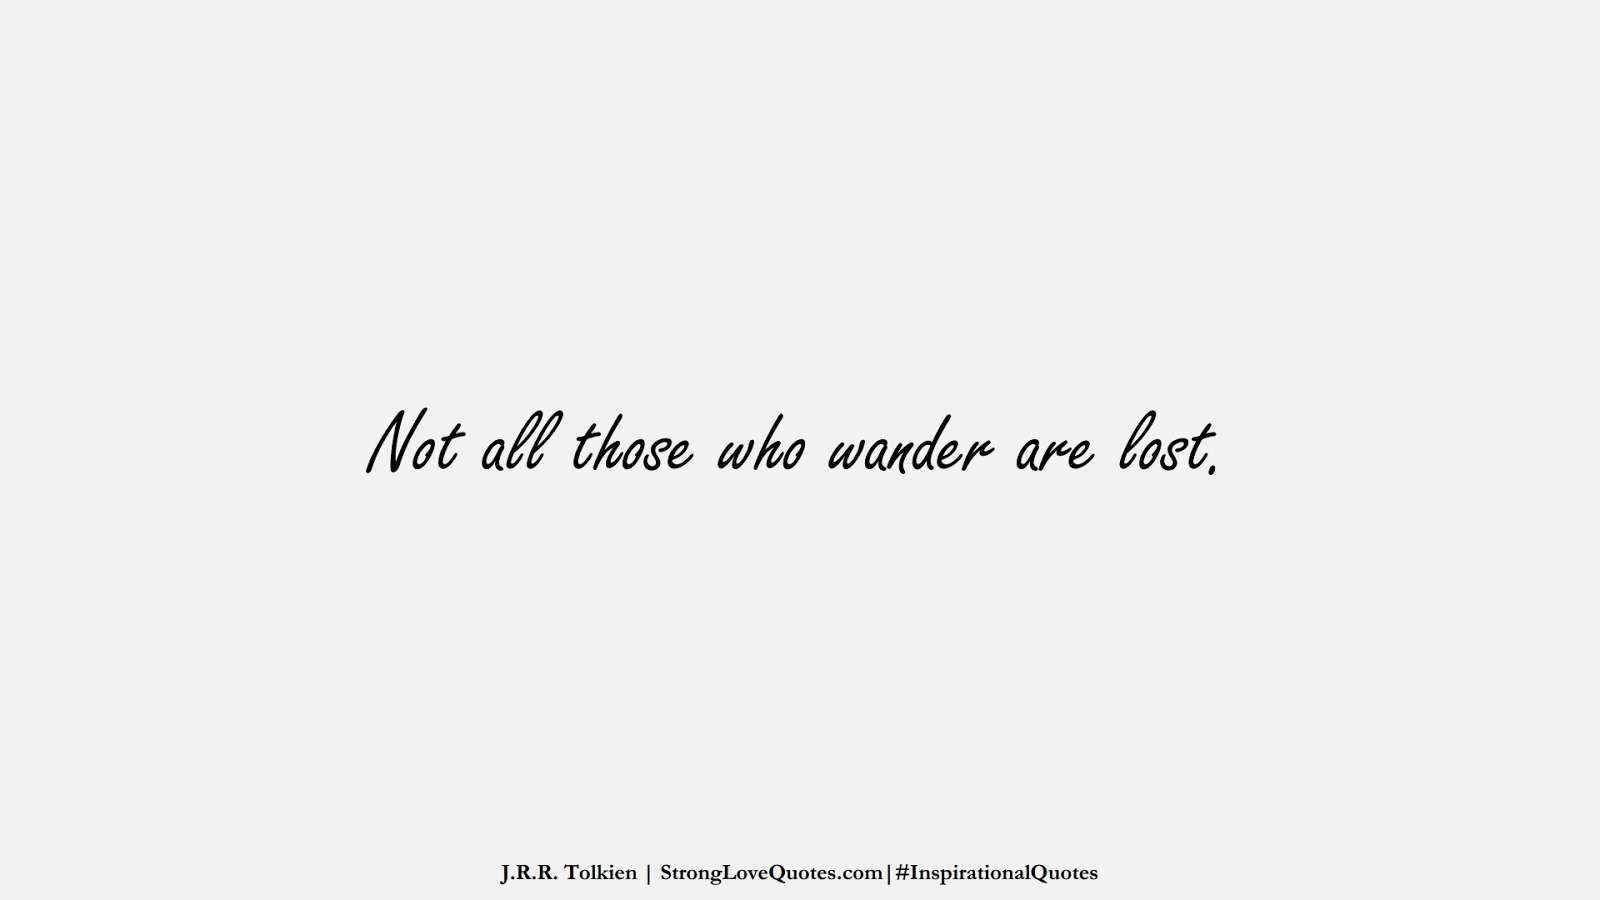 Not all those who wander are lost. (J.R.R. Tolkien);  #InspirationalQuotes